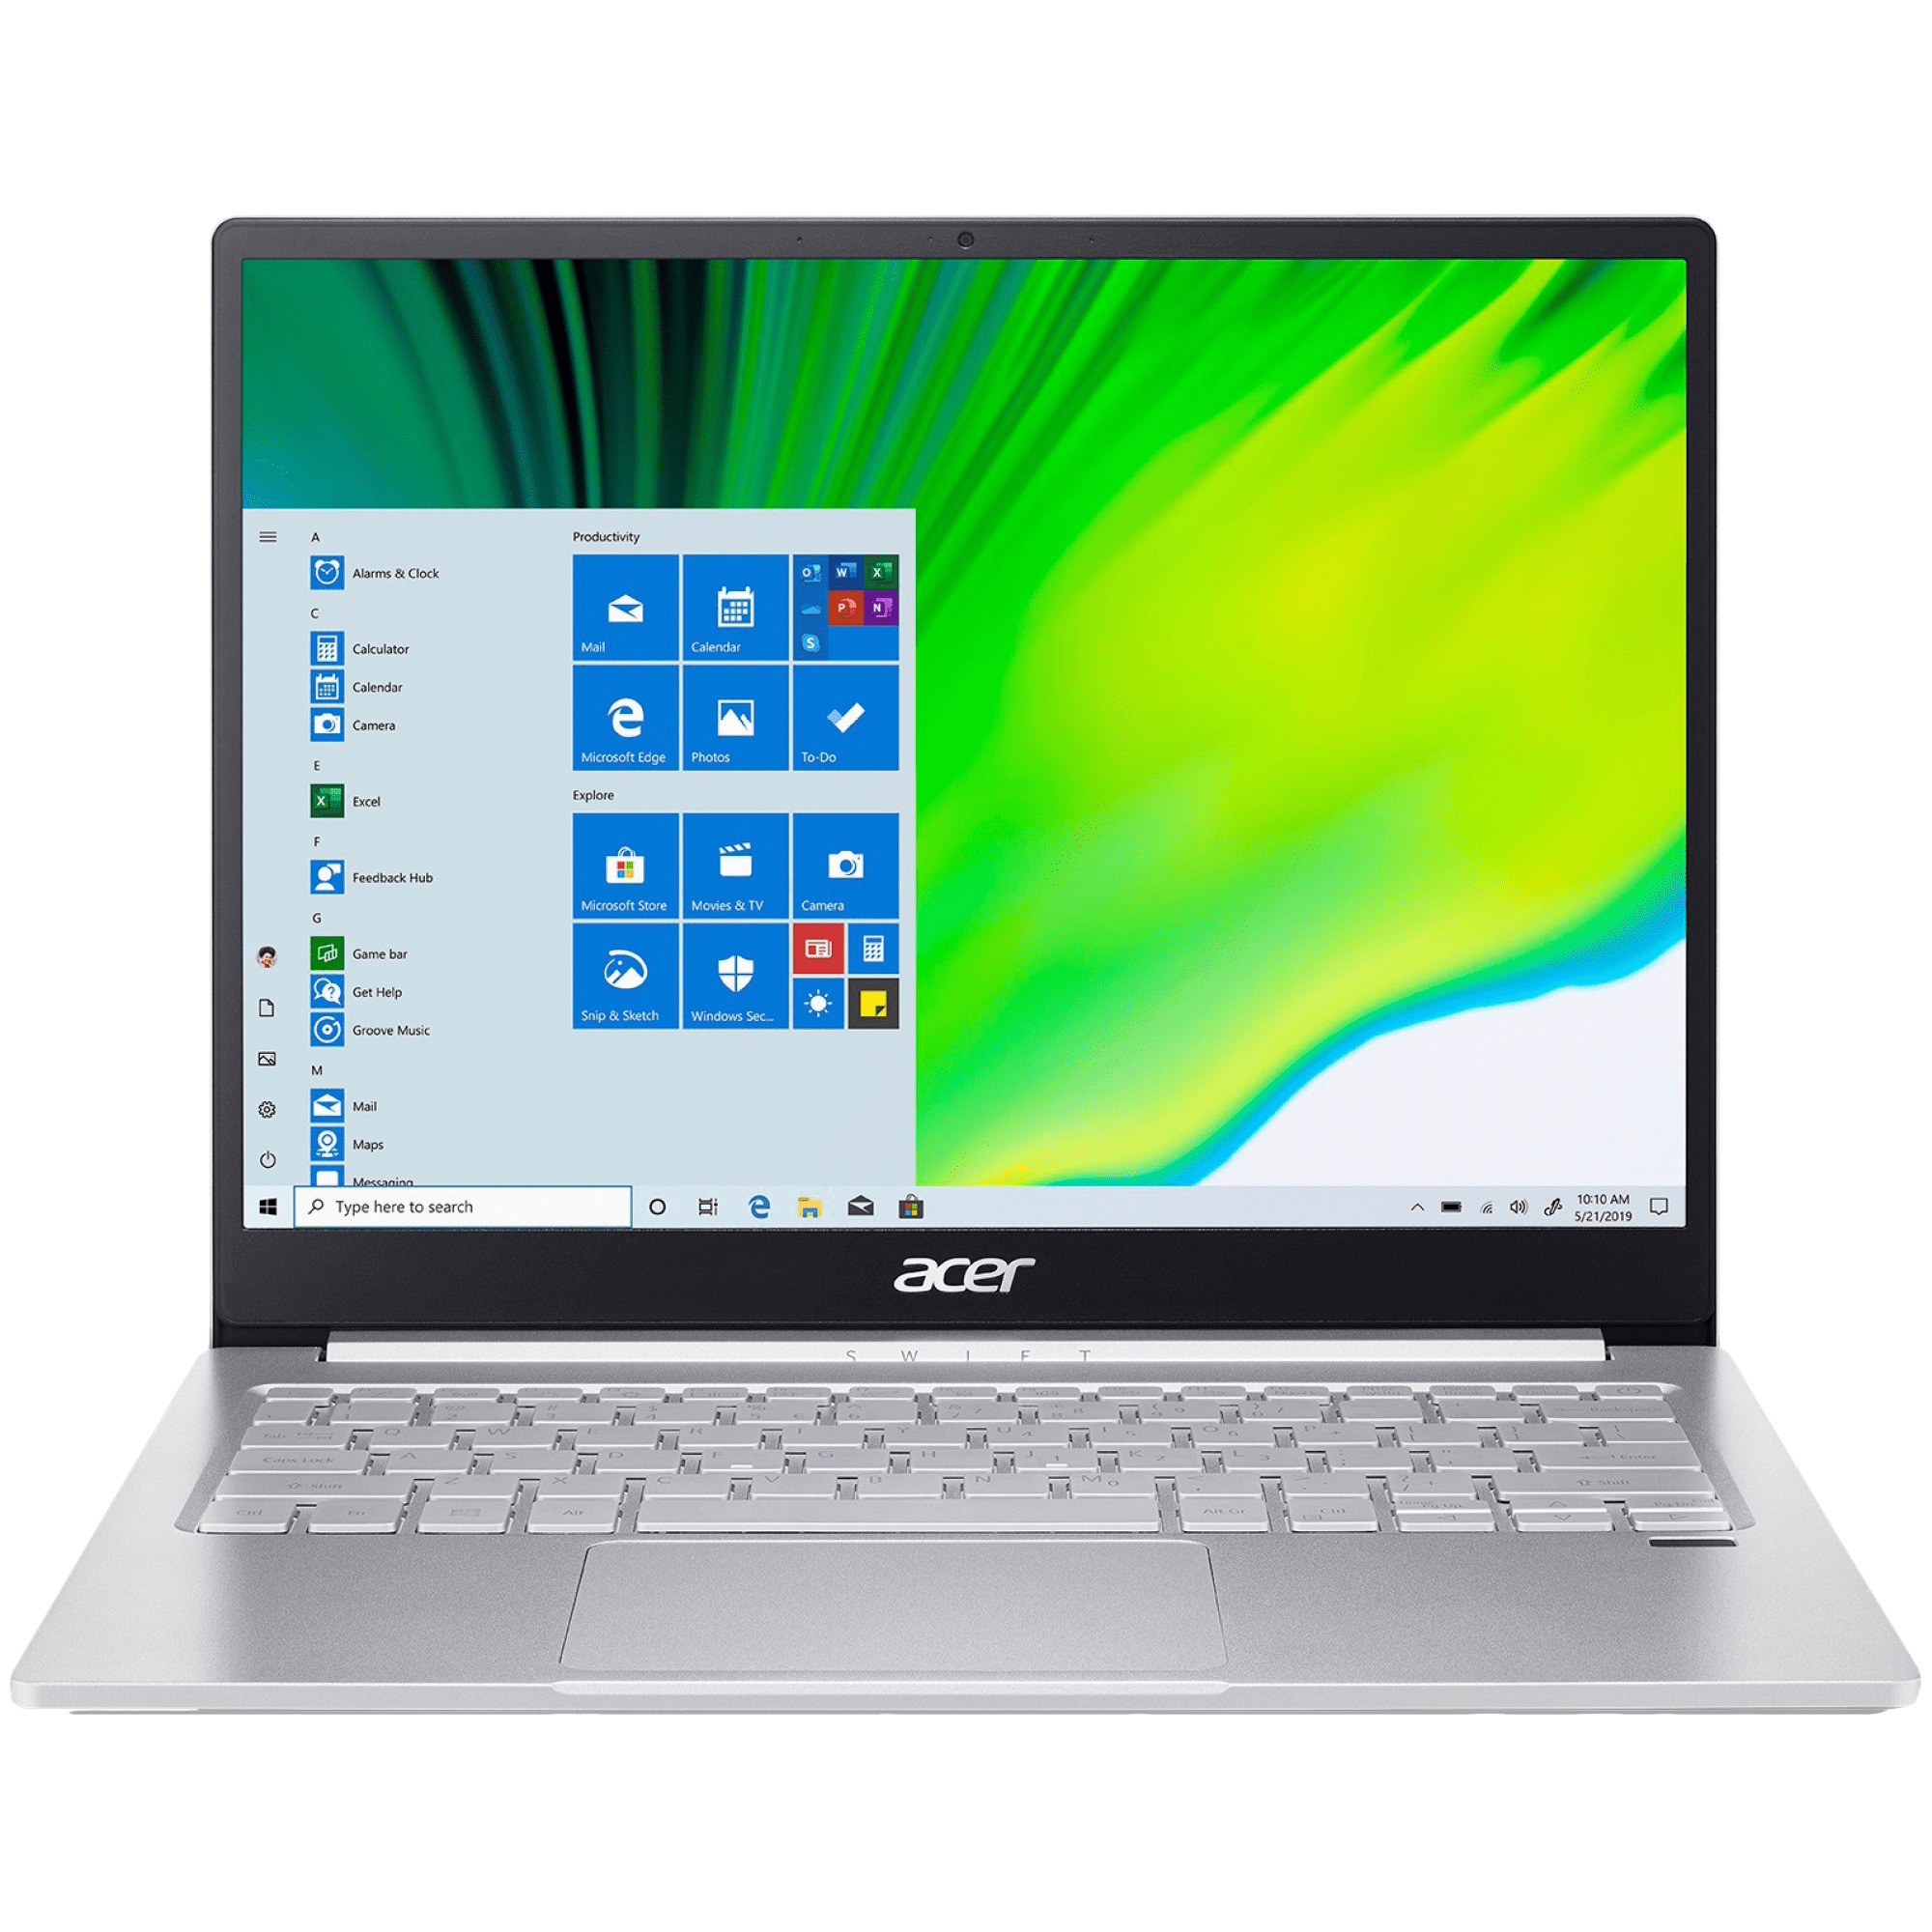 Acer Swift 3 SF313-53-532J (NX.A4KSI.001) Core i5 11th Gen Windows 10 Home Thin and Light Laptop (8GB RAM, 512GB SSD, Intel Iris Xe Graphics, MS Office, 34.3cm, Sparkly Silver)